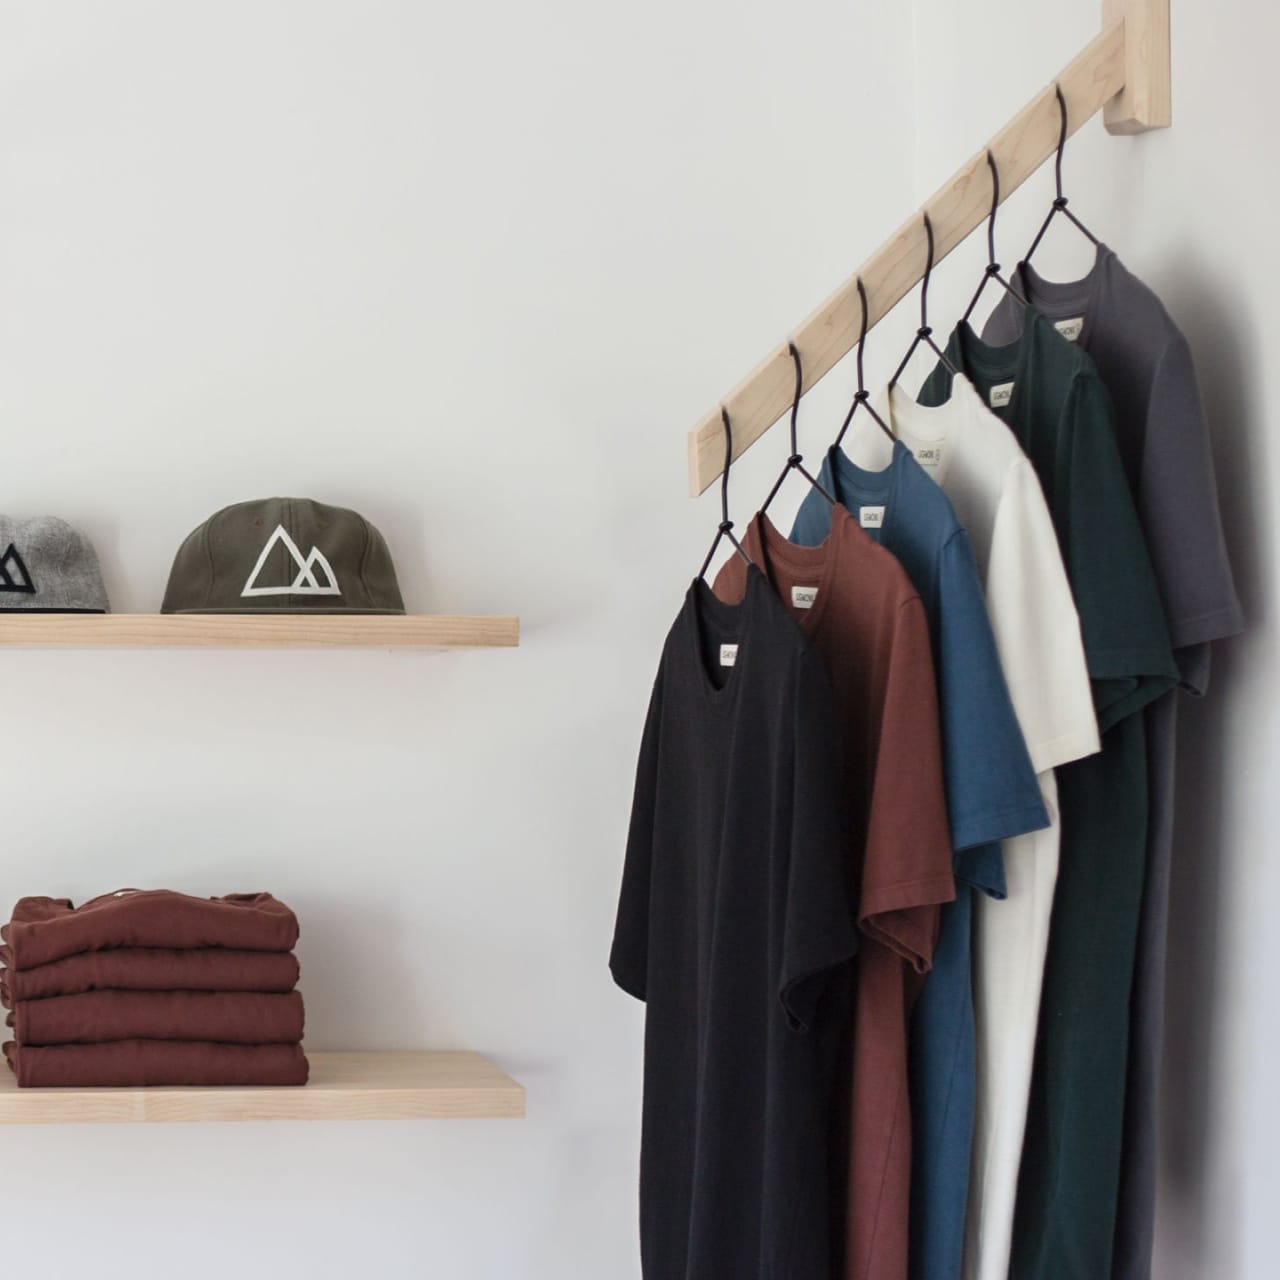 Hats and sweaters on wood shelves next to various colors of t-shirts on hangers.